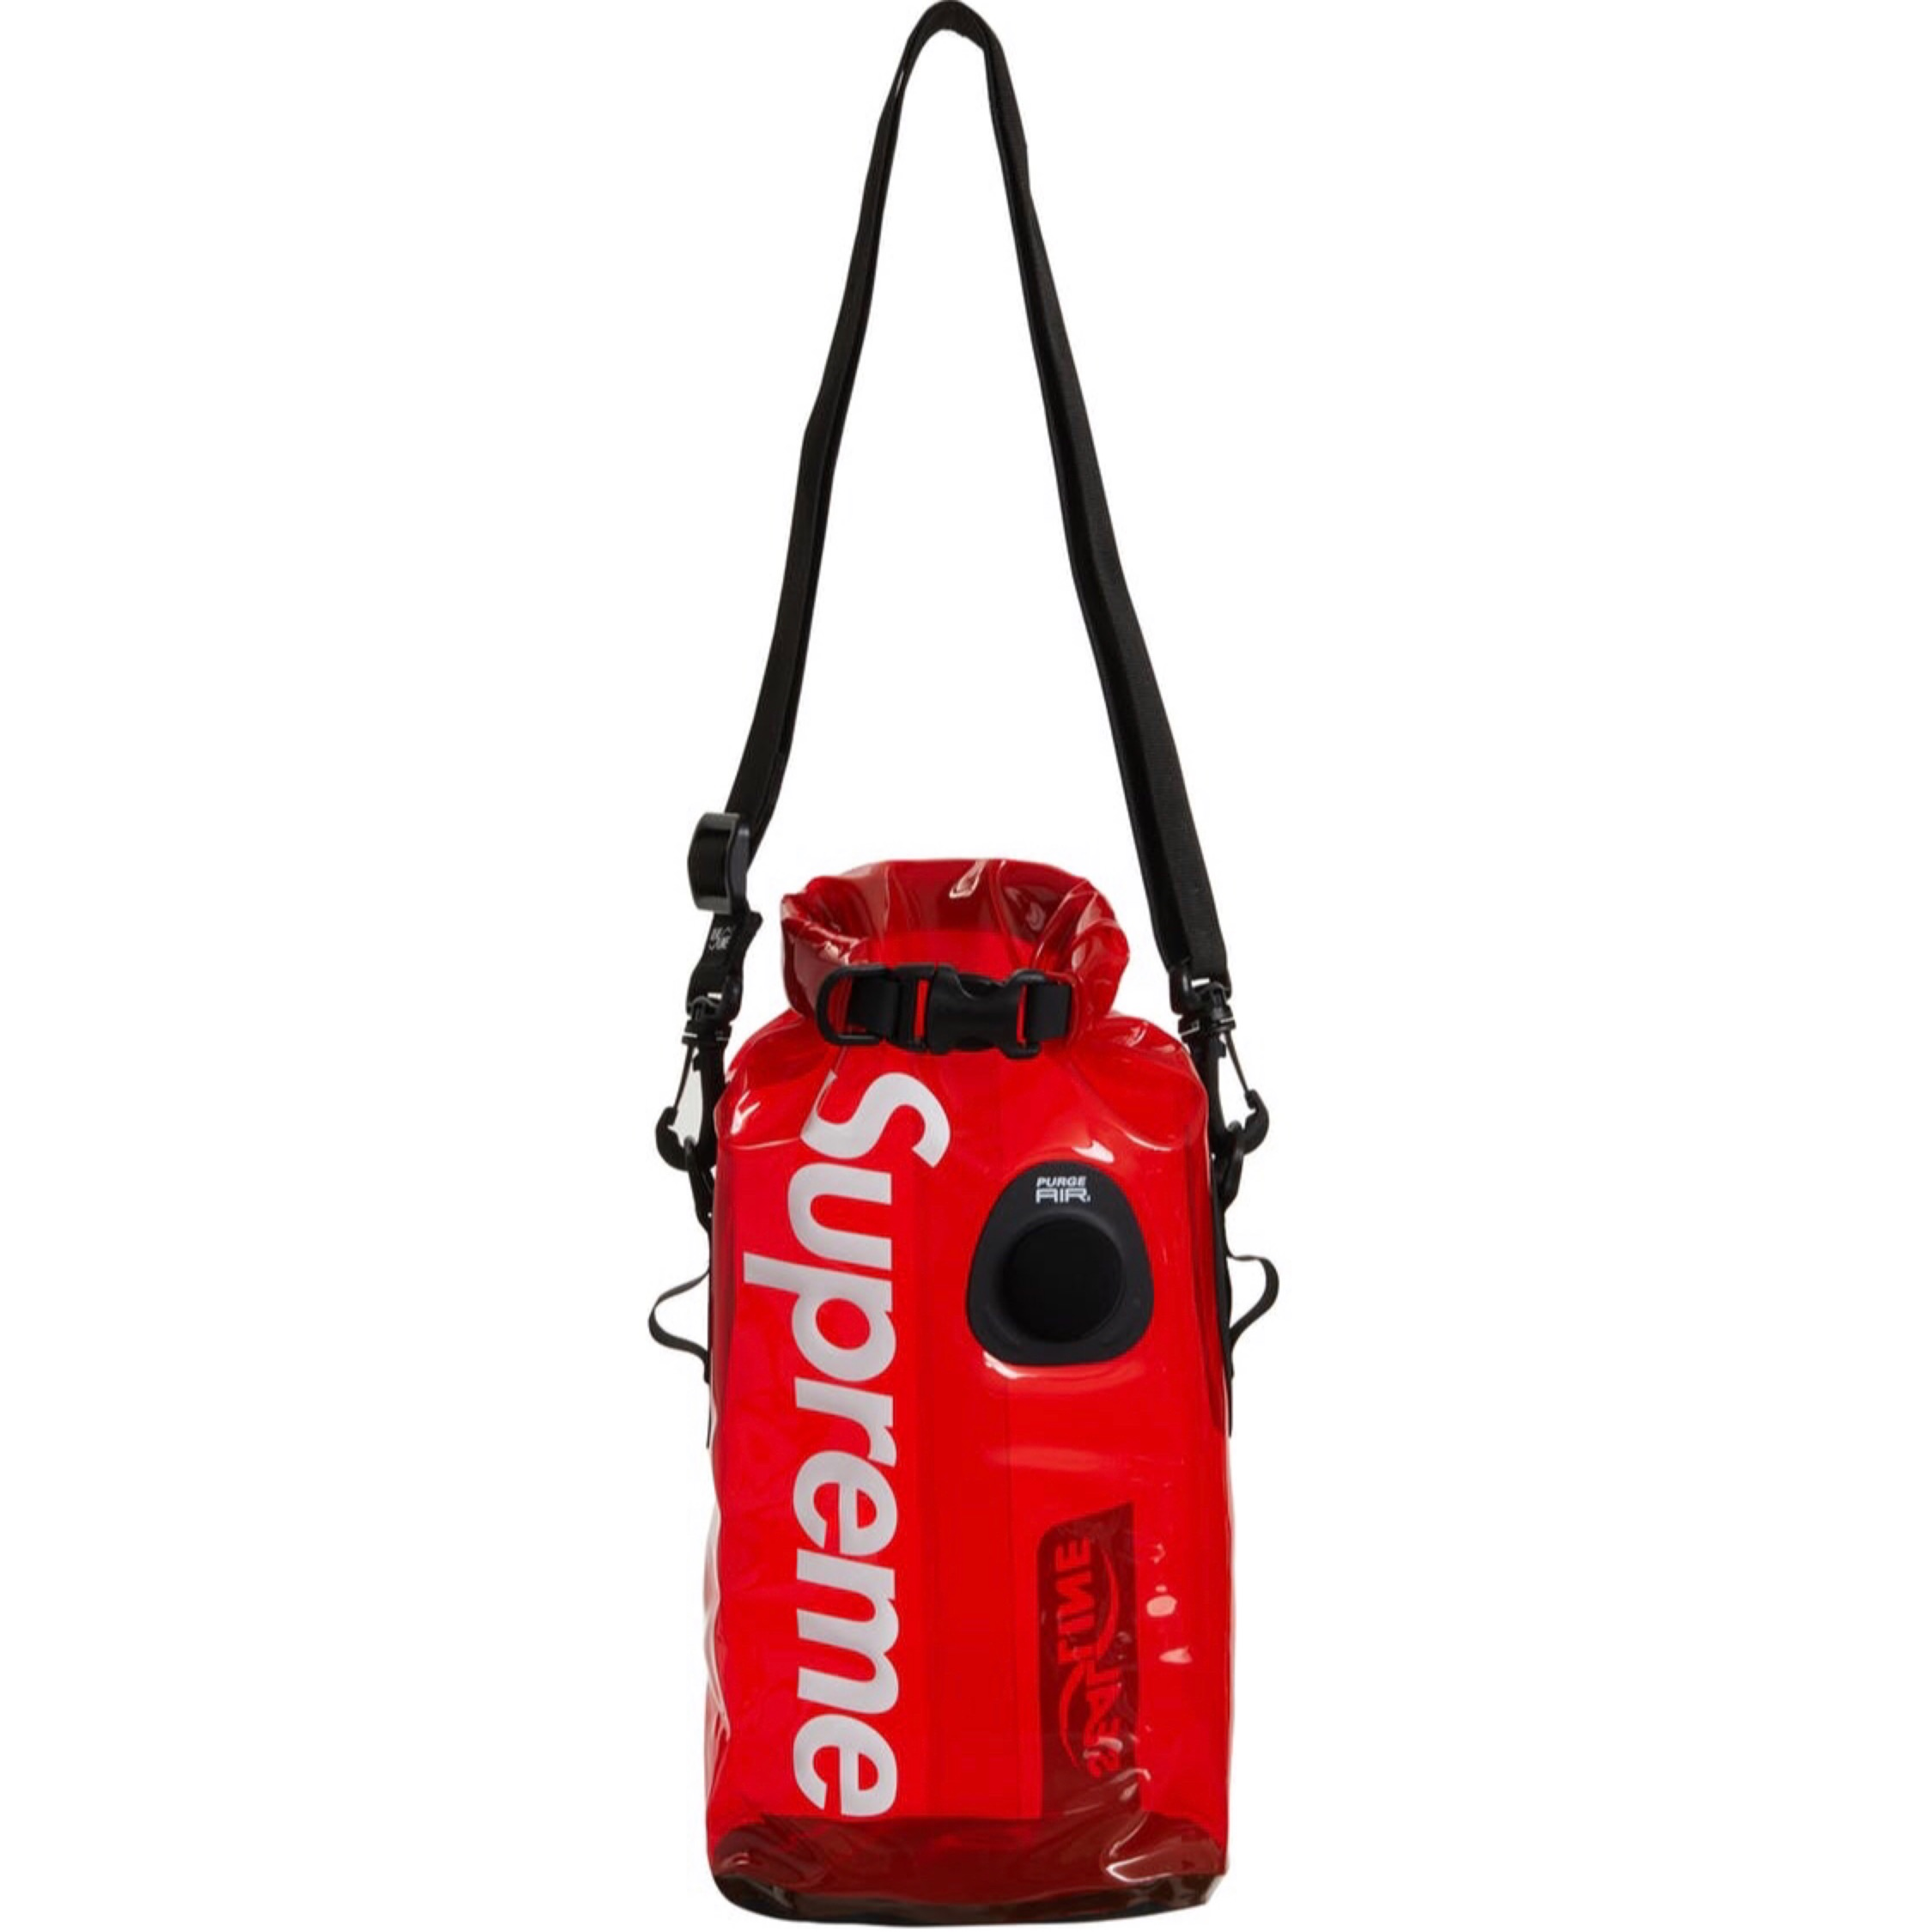 Supreme X Sealline Discovery Dry Bag 5L In Red